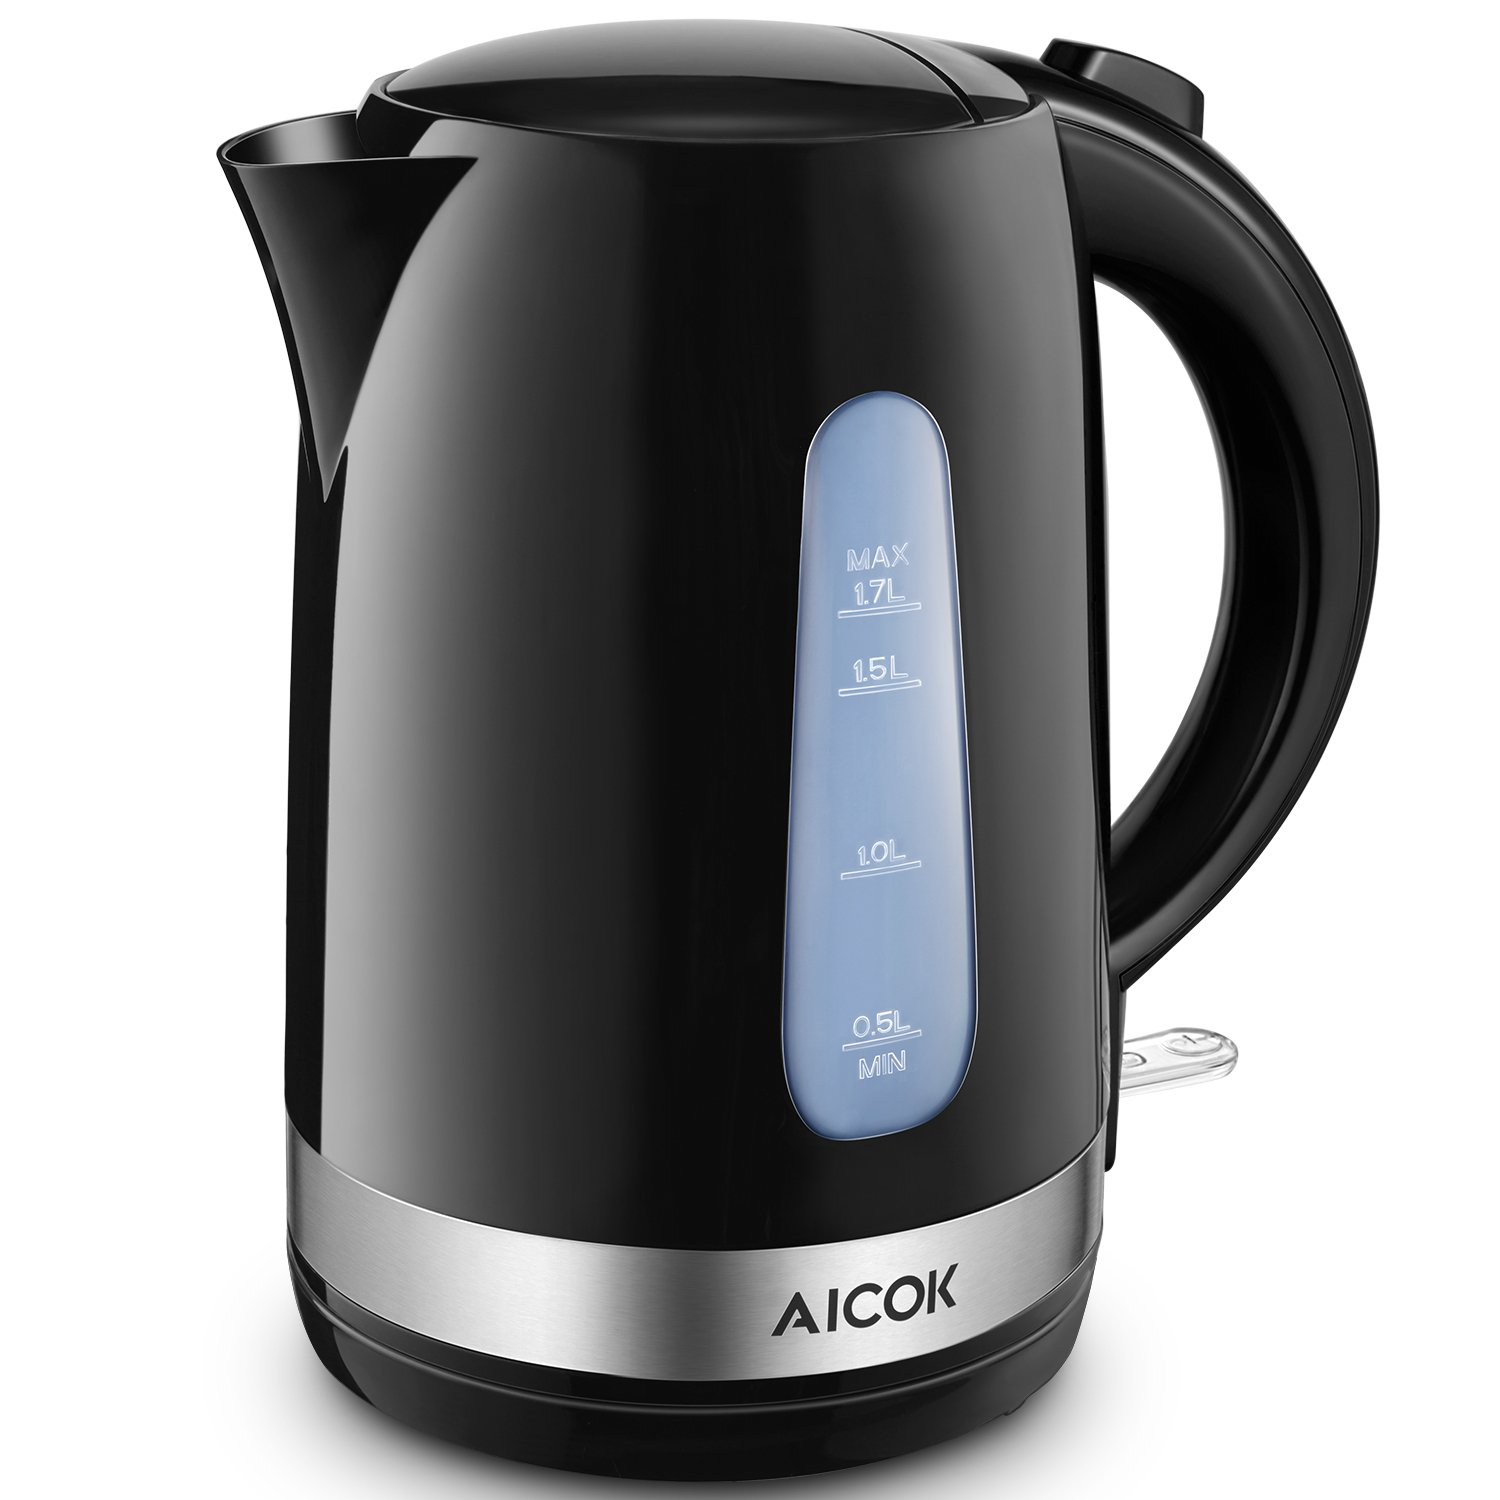 Electric Kettle 1.7L HandyPouring Electric Tea Kettle, 1500W Fast Heating Cordless Water Boiler with British Strix Control, Hot Water Kettle Electric with Auto Shut-Off & Boil Dry Protection BPA-Free